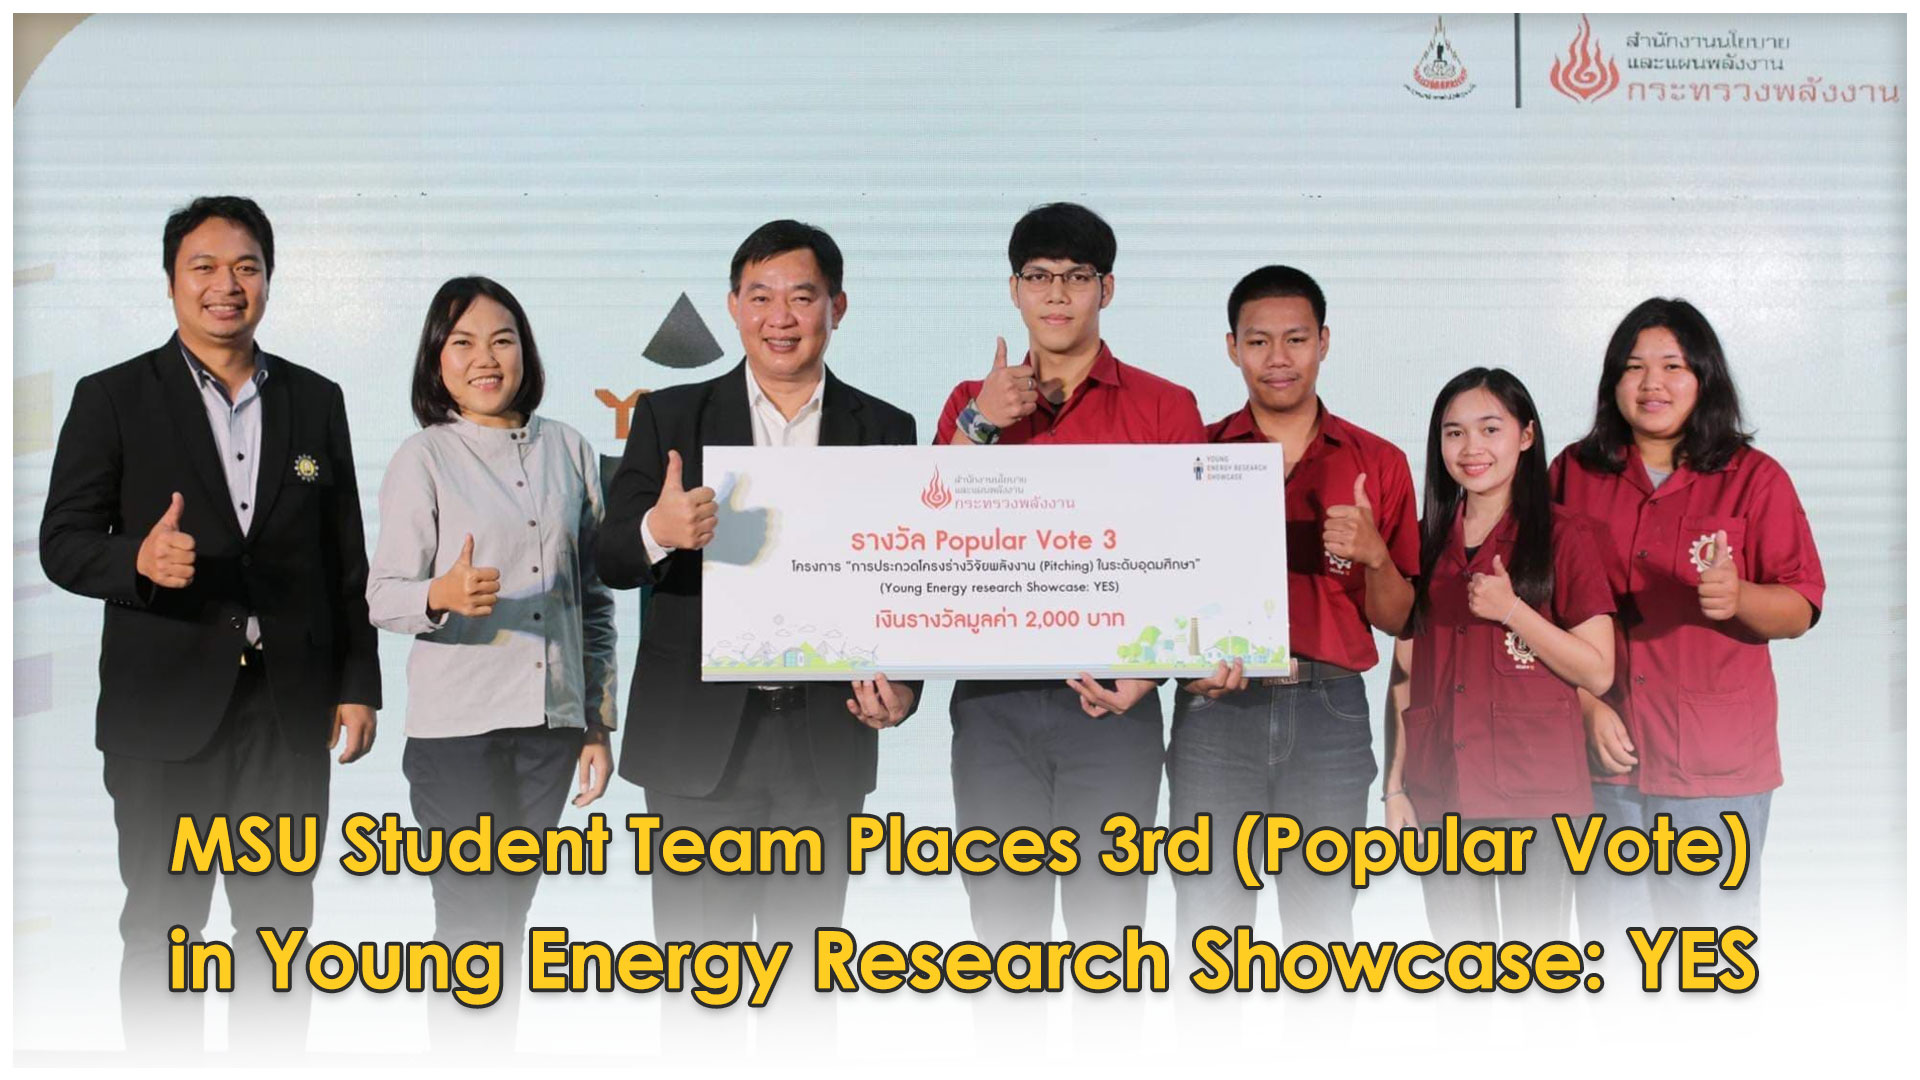 MSU Student Team Places 3rd (Popular Vote) in Young Energy Research Showcase: YES.